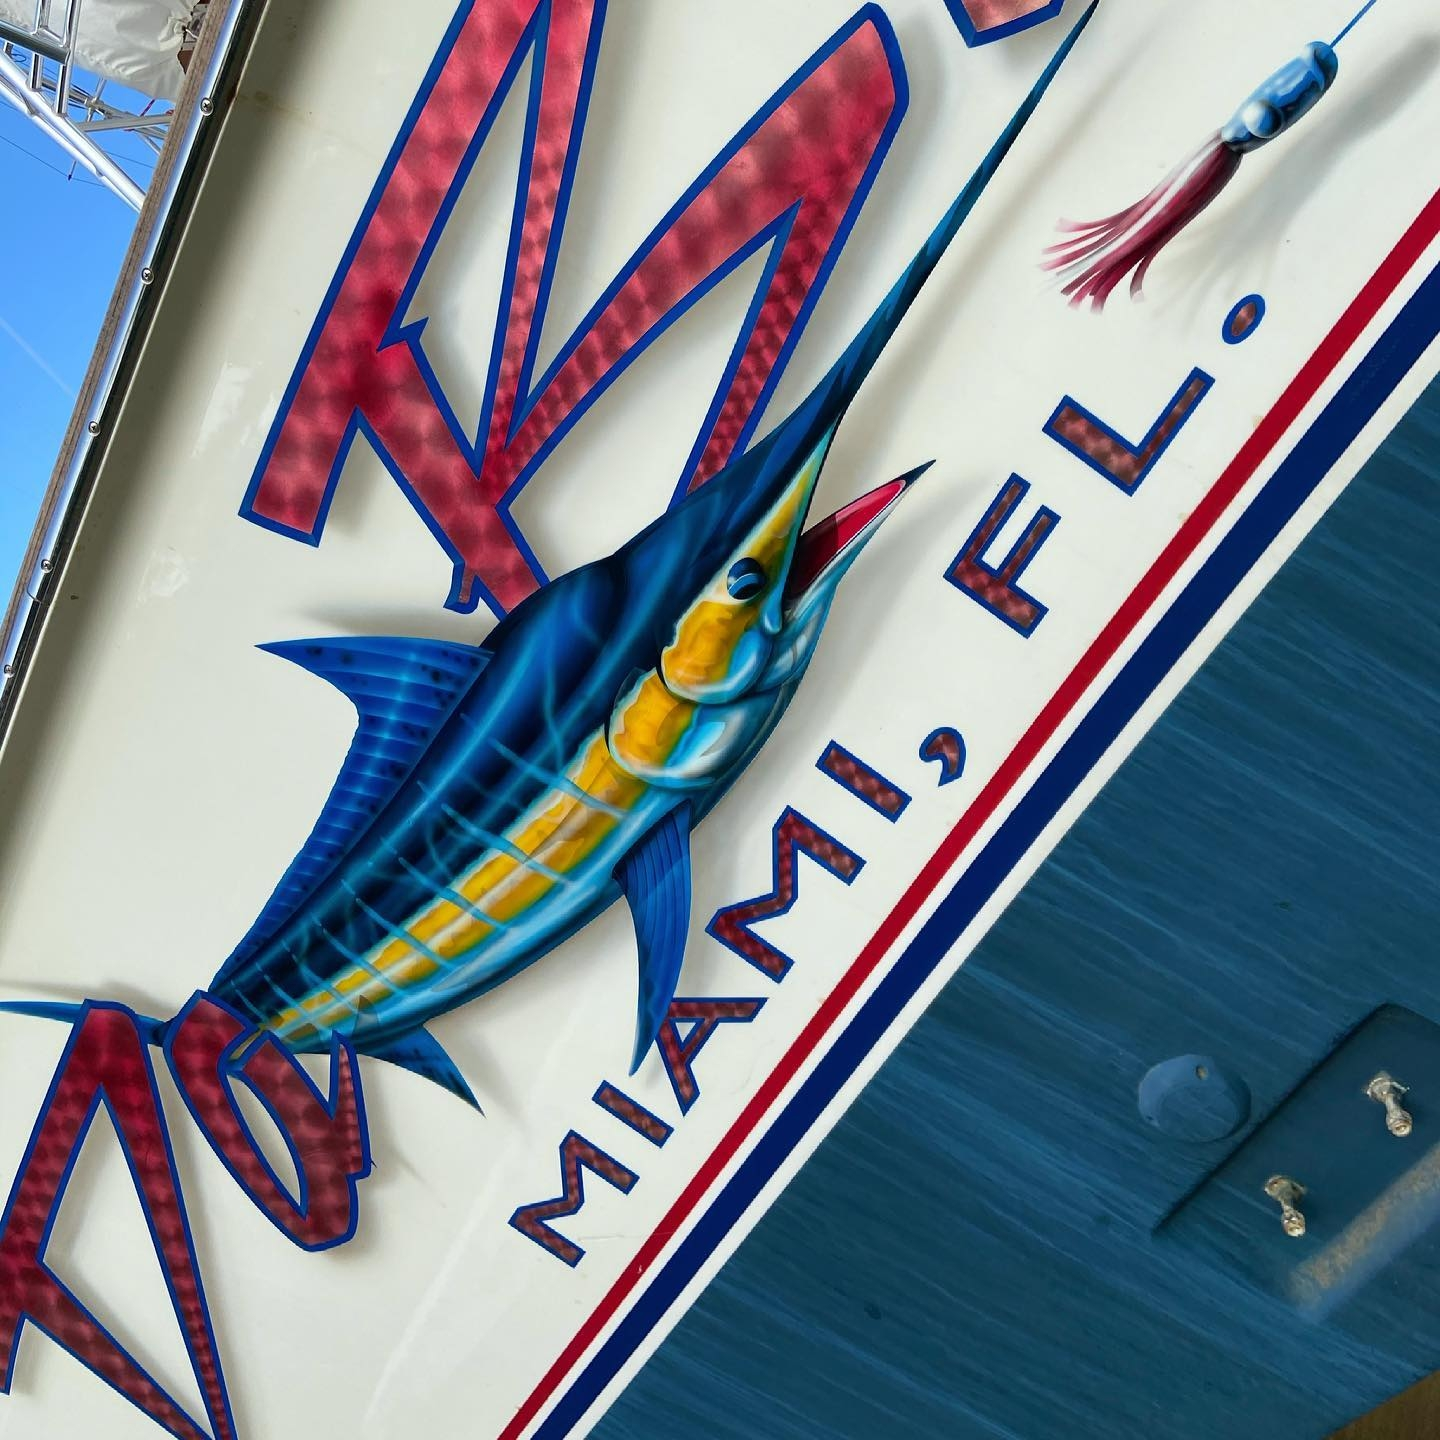 Da Bait is a 68' Spencer Yachts convertible which splashed in 2015. Da Bait's transom features a large marlin graphic, candy painted engine turned white gold leaf letters with soft drop shadows.